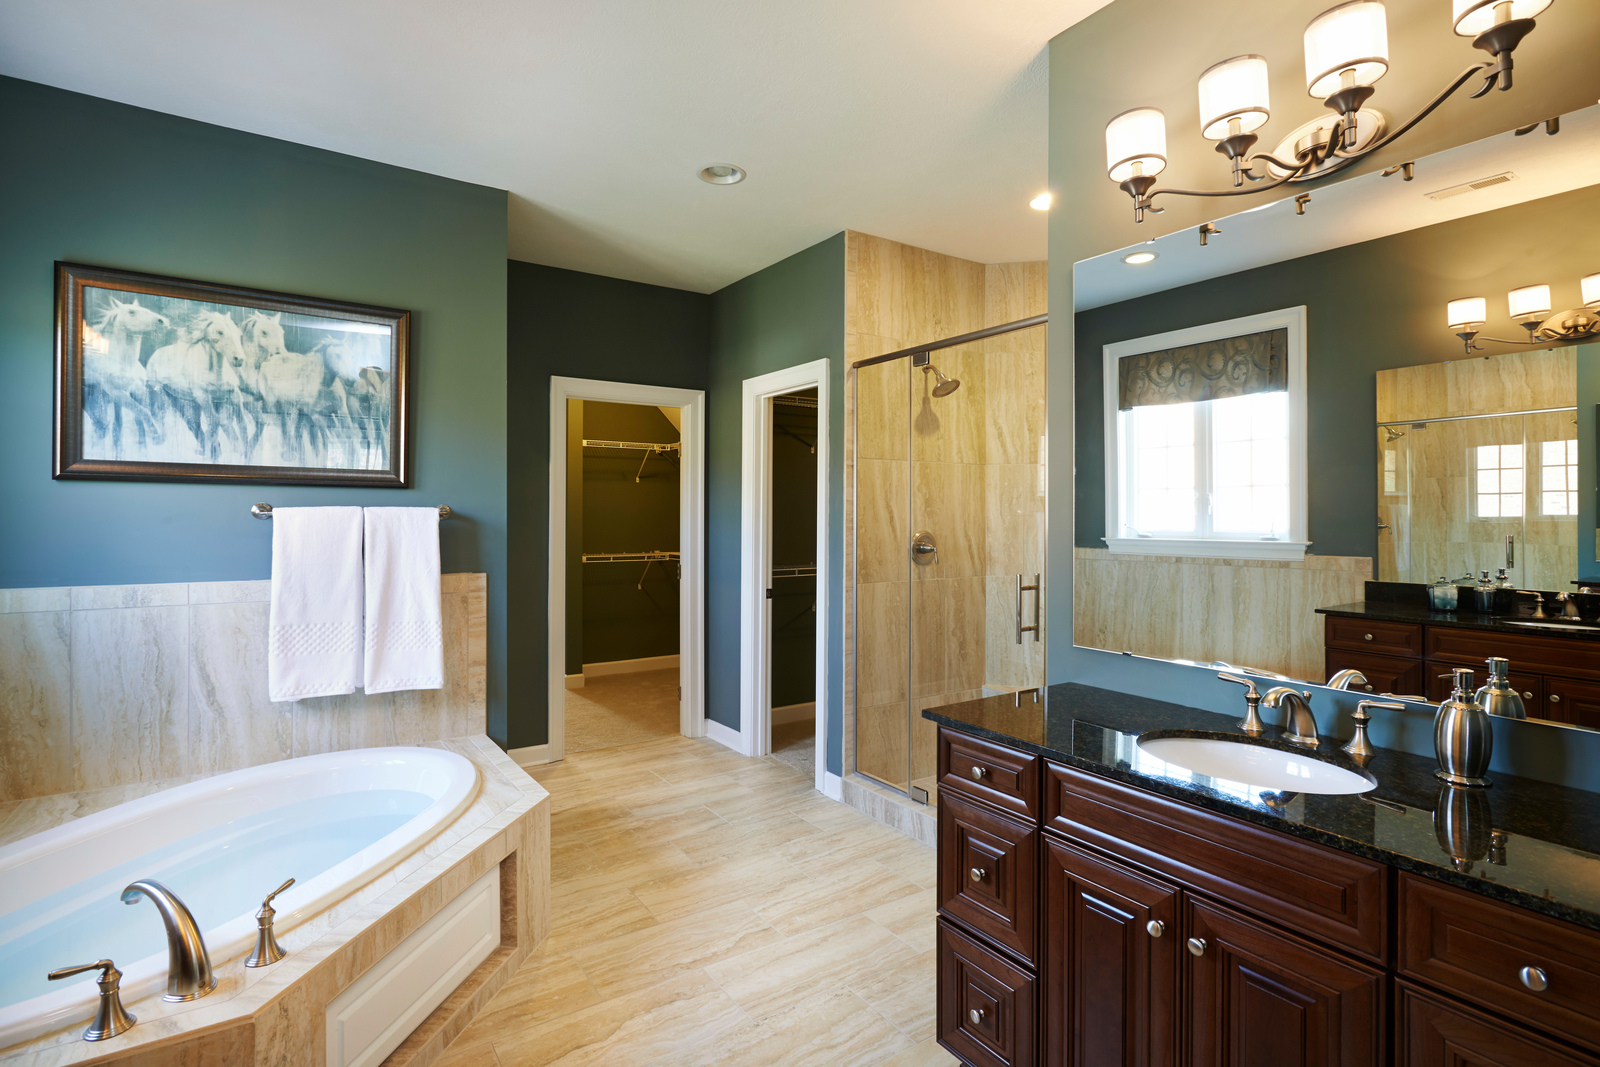 New chapel hill home model for sale nvhomes for Model home bathroom photos